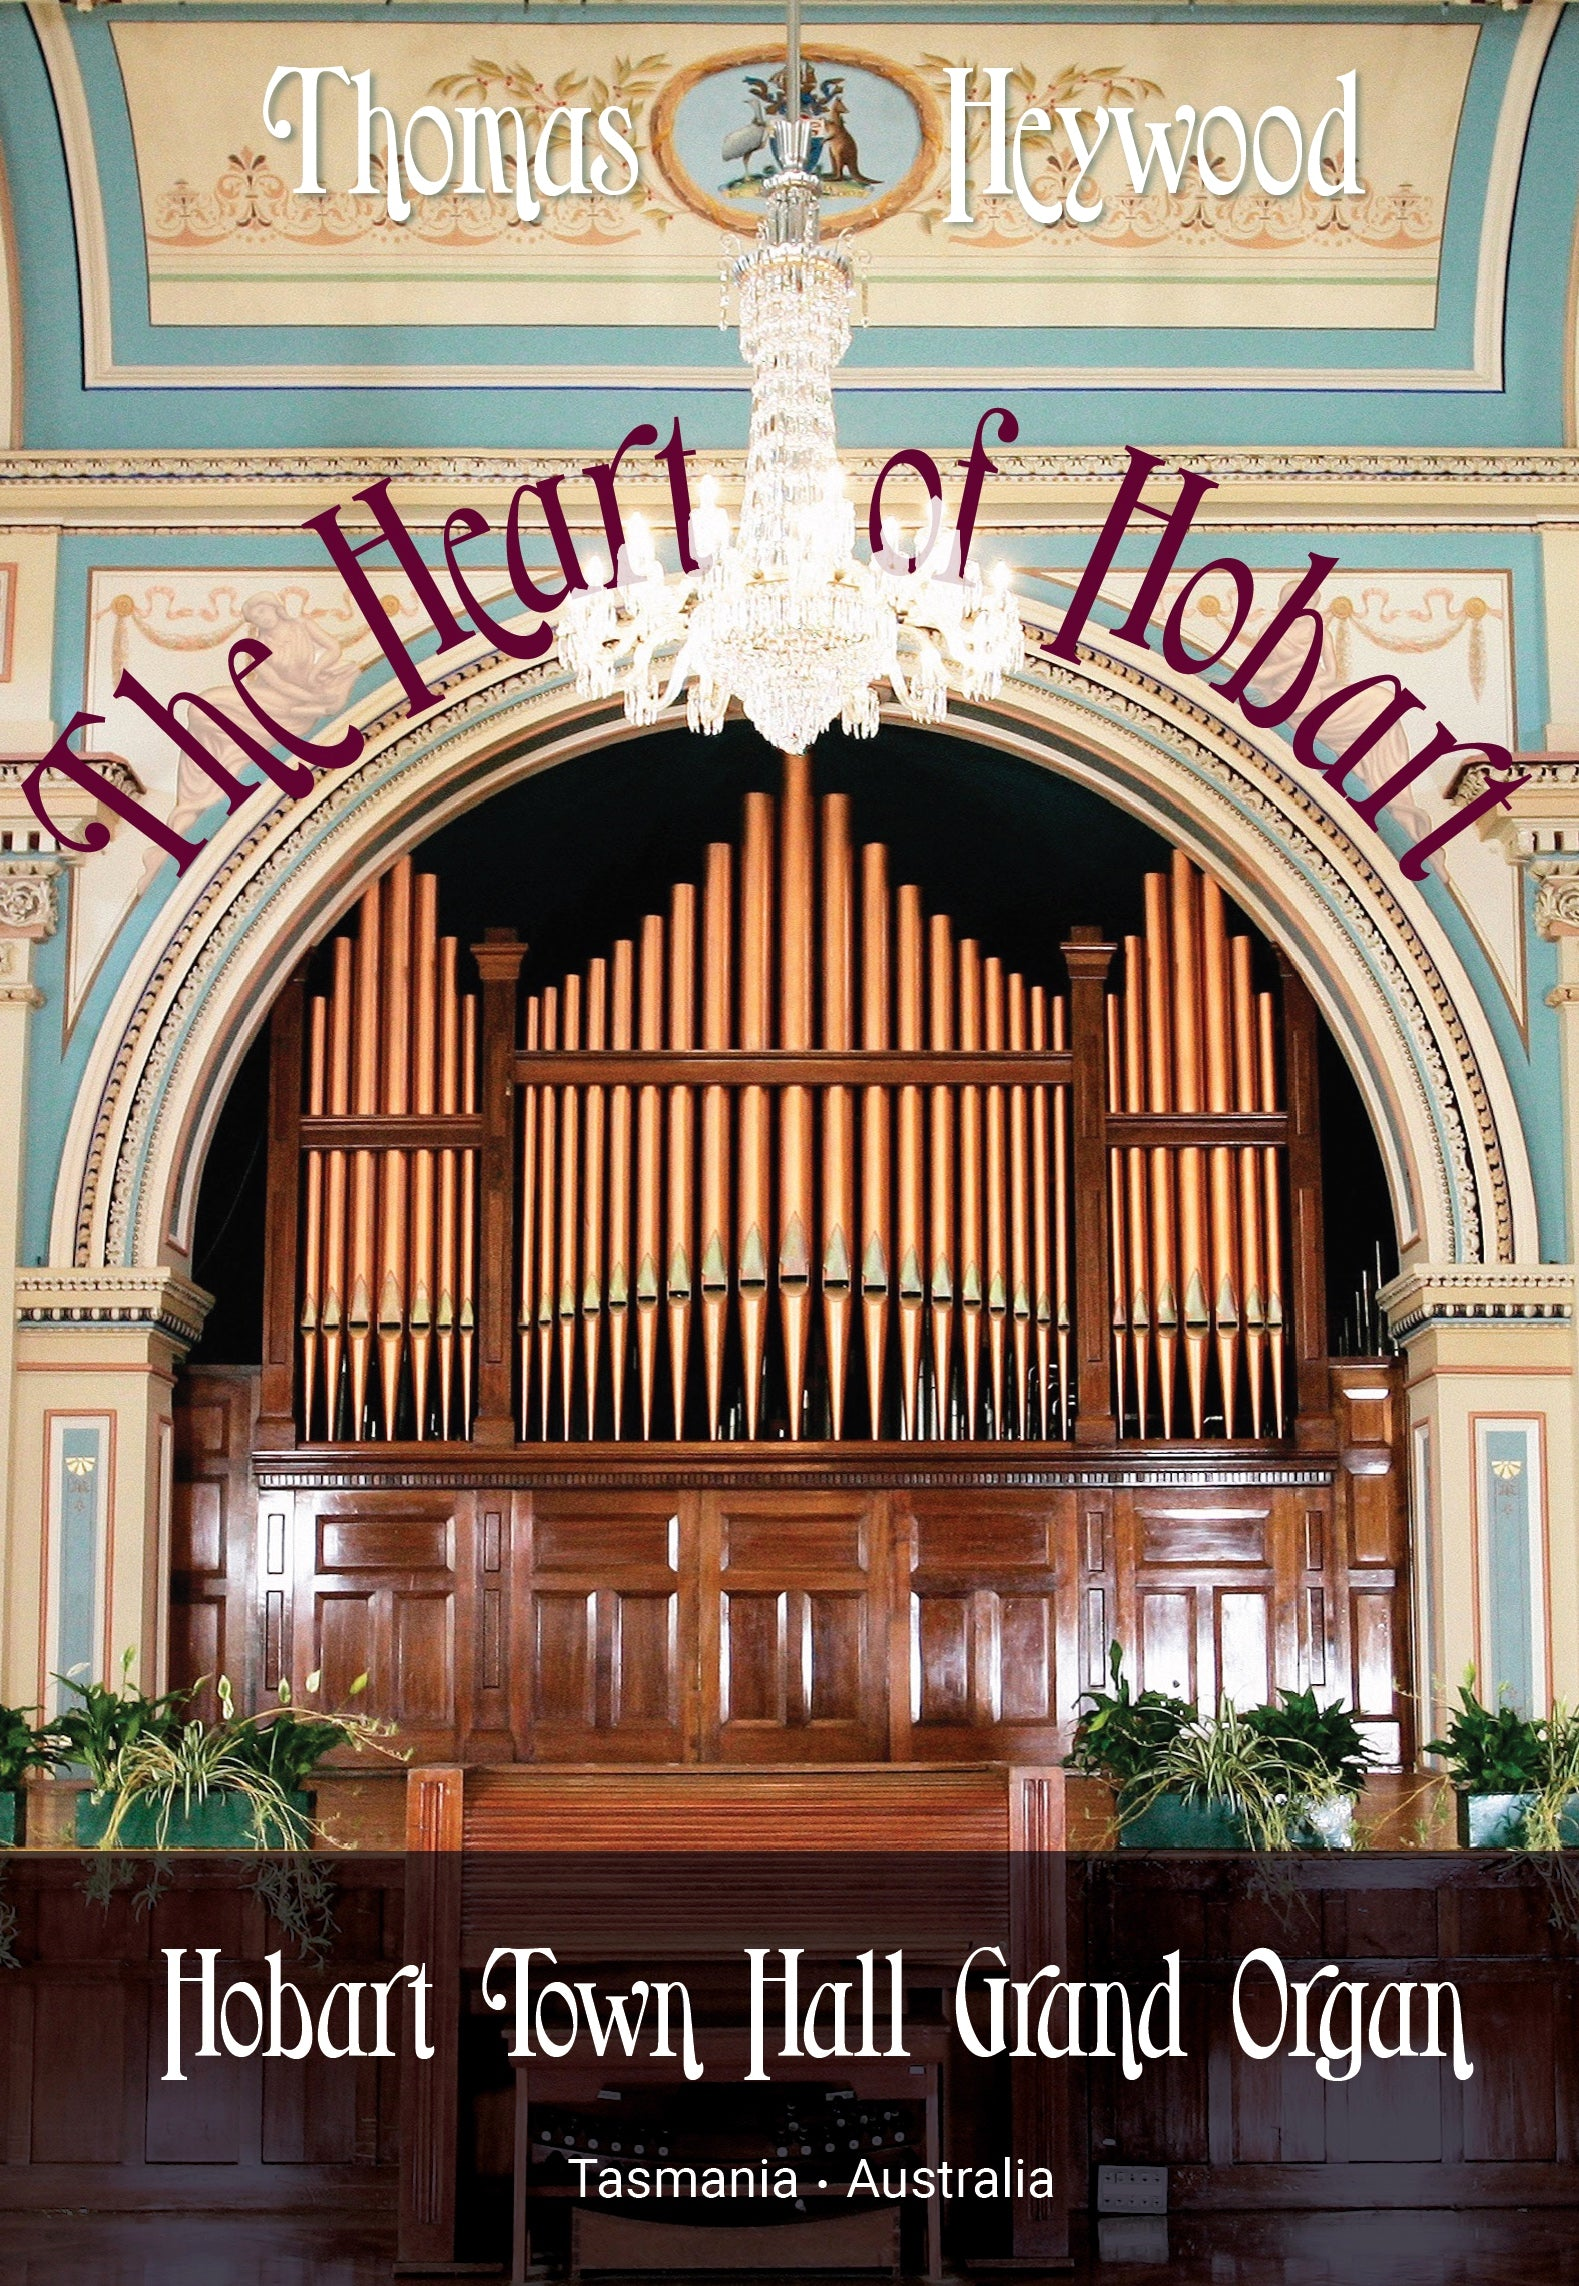 The Heart of Hobart (MP4 Film) | Thomas Heywood | Concert Organ International